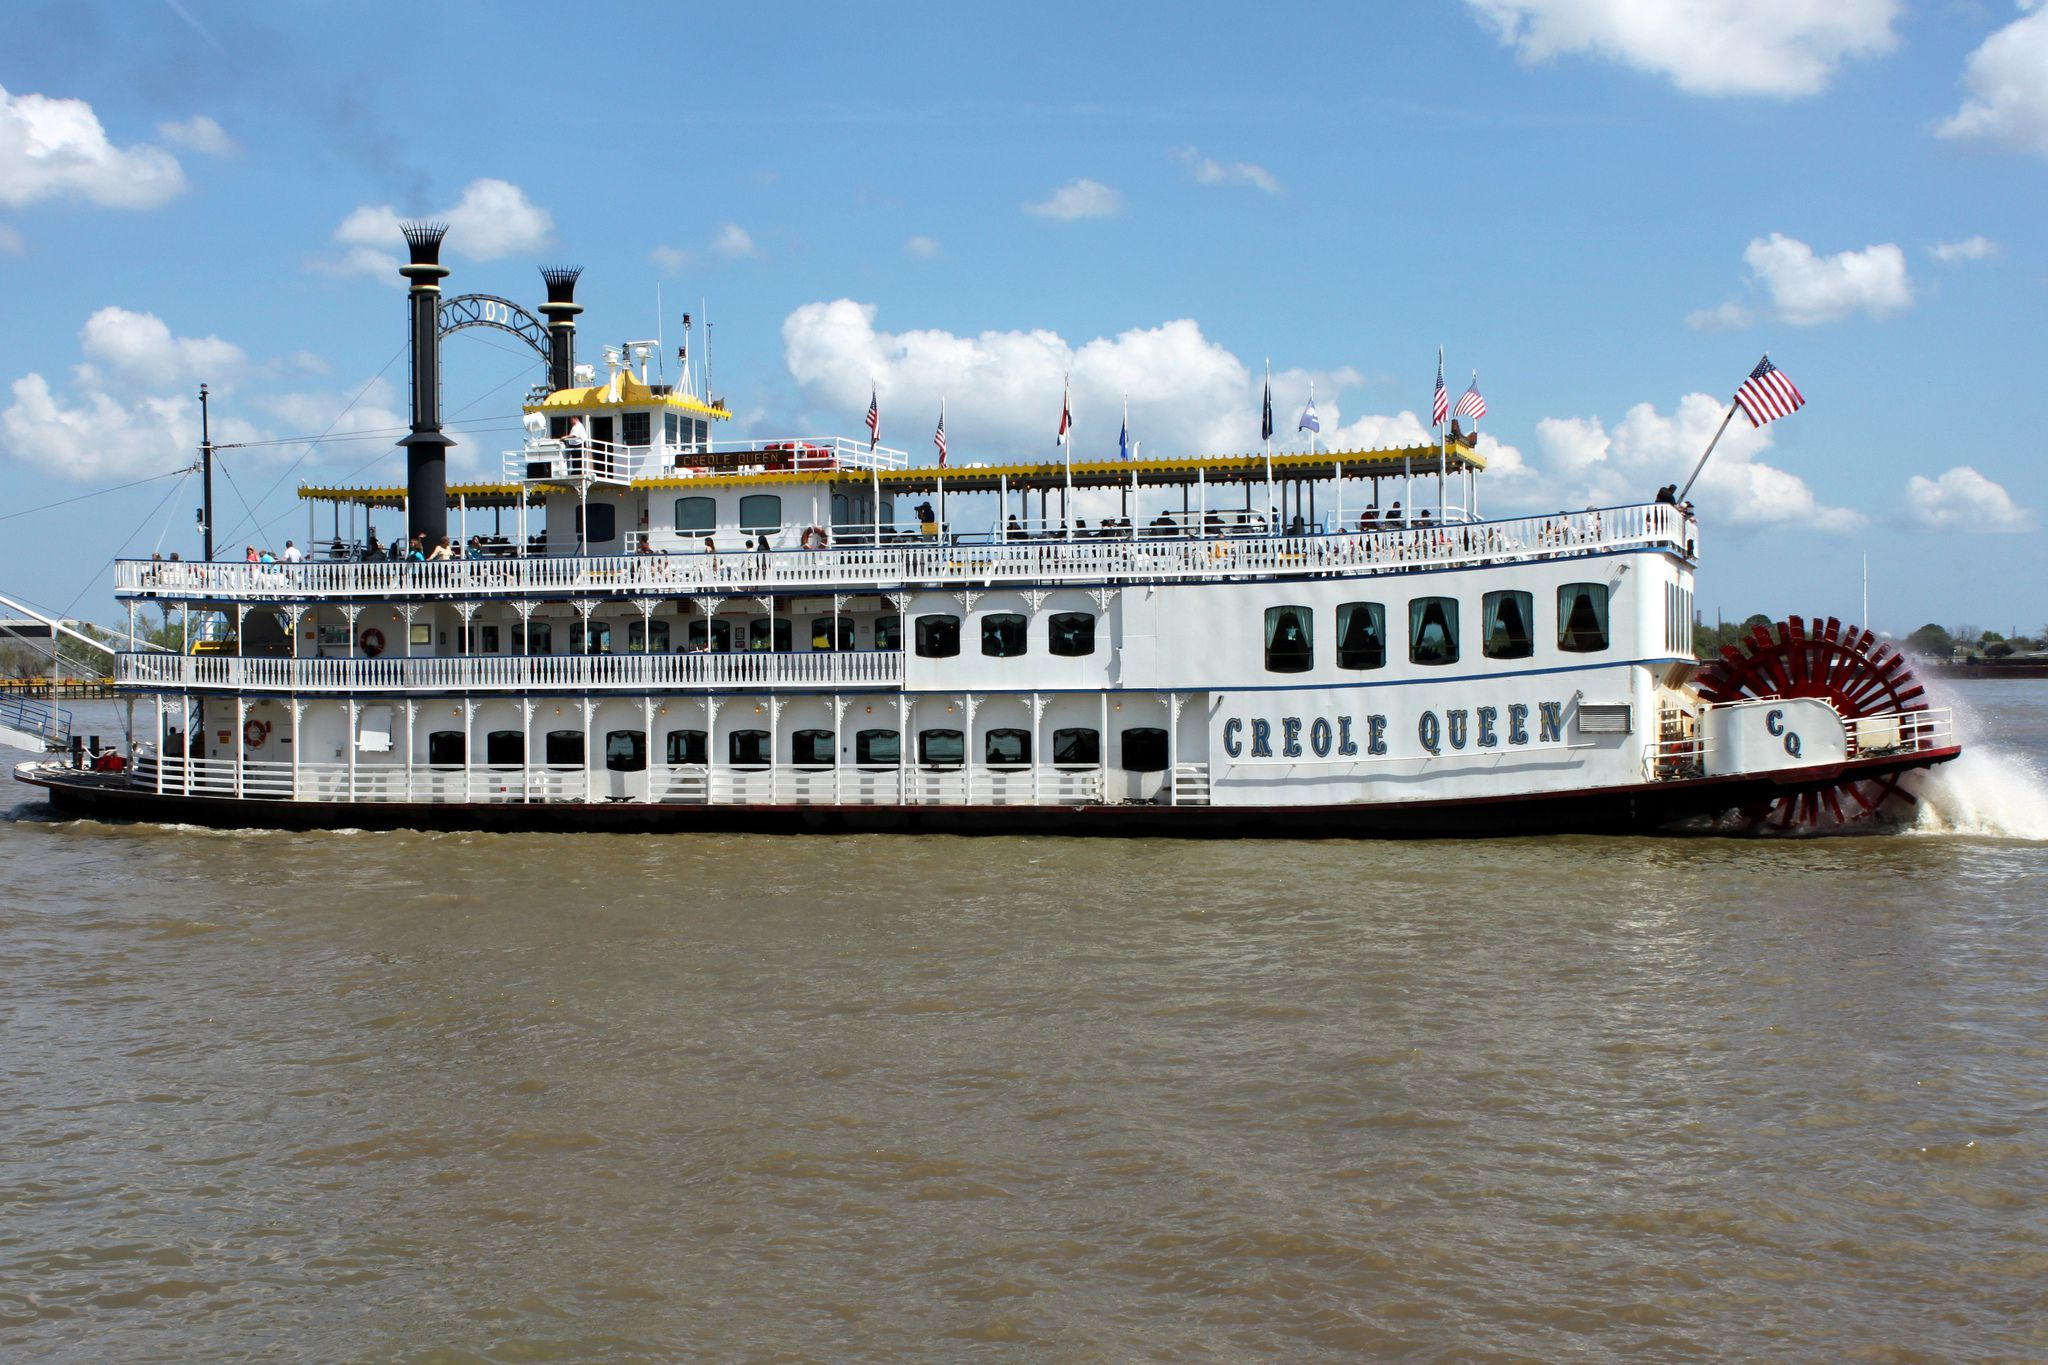 New Orleans Riverboat Rides On The Mississippi River